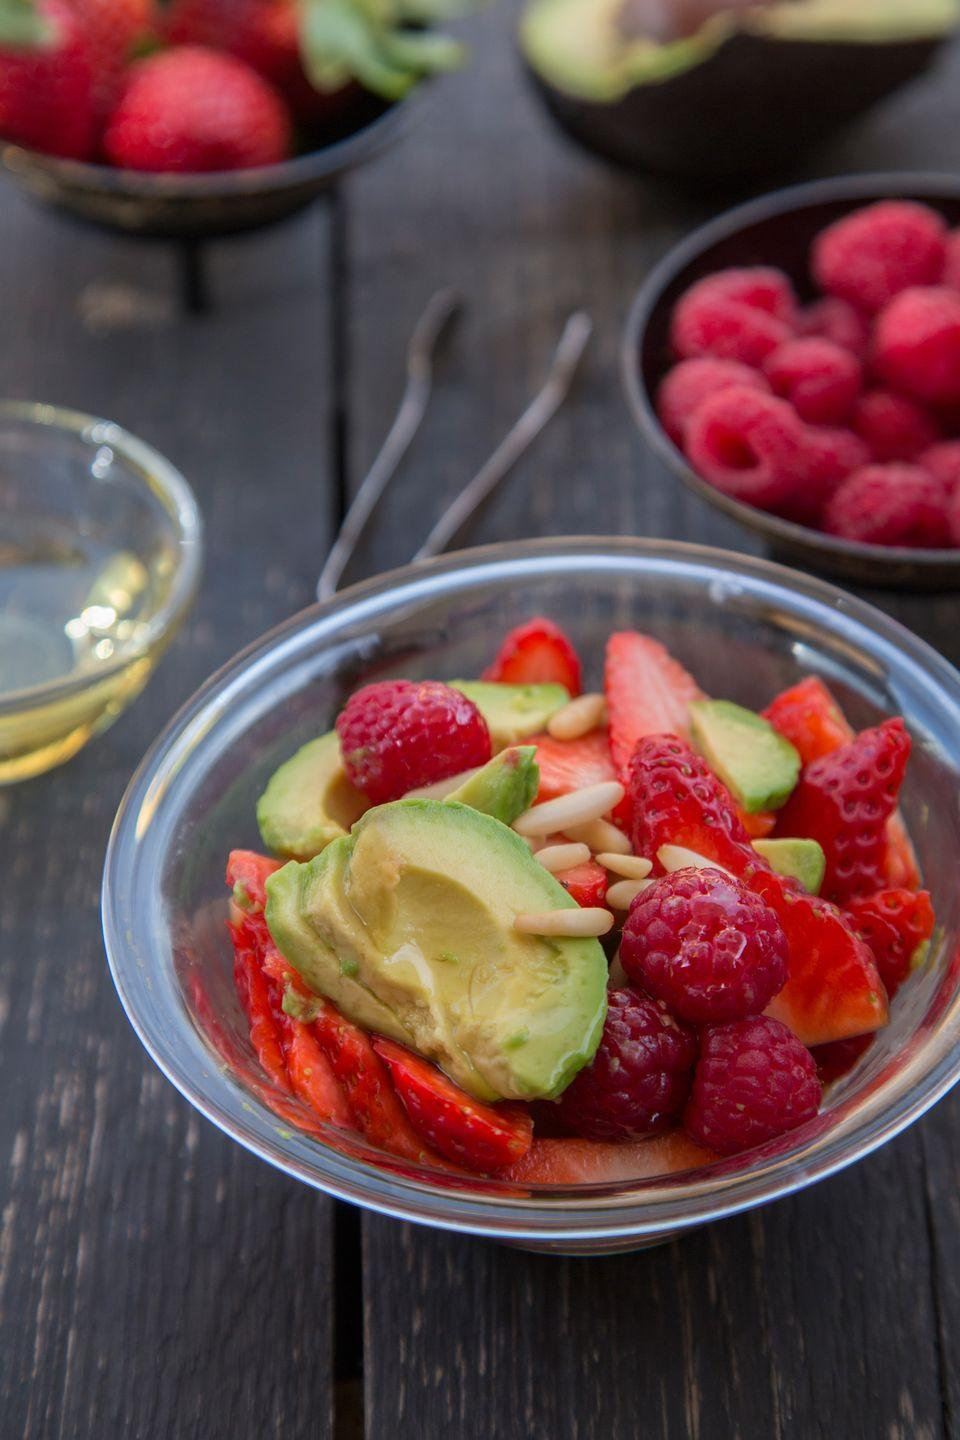 """<p>Luscious strawberries and creamy avocado mingle in a honeyed lemon dressing to create this simple and elegant salad. Try tossing some raspberries in there, too!</p><p><strong><a href=""""https://www.countryliving.com/food-drinks/recipes/a812/avocado-strawberries-honey-vinaigrette/"""" rel=""""nofollow noopener"""" target=""""_blank"""" data-ylk=""""slk:Get the recipe"""" class=""""link rapid-noclick-resp"""">Get the recipe</a>.</strong></p>"""